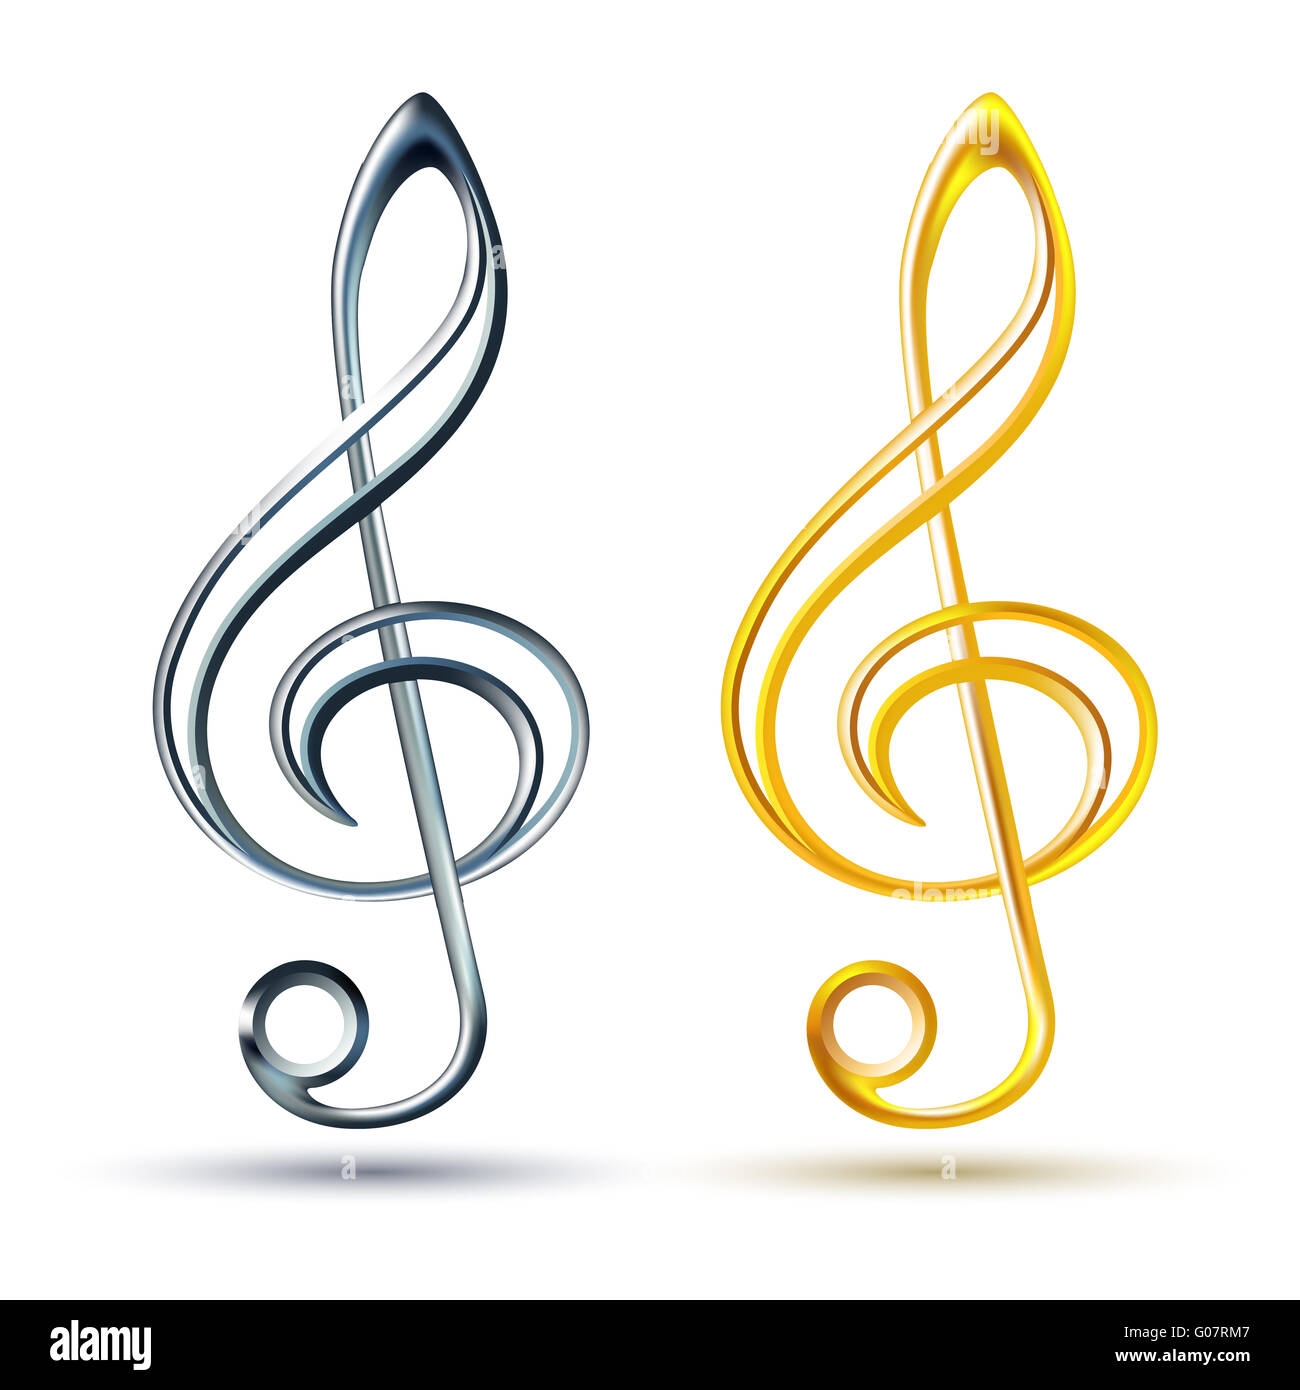 Gold and silver treble clef on white background - Stock Image